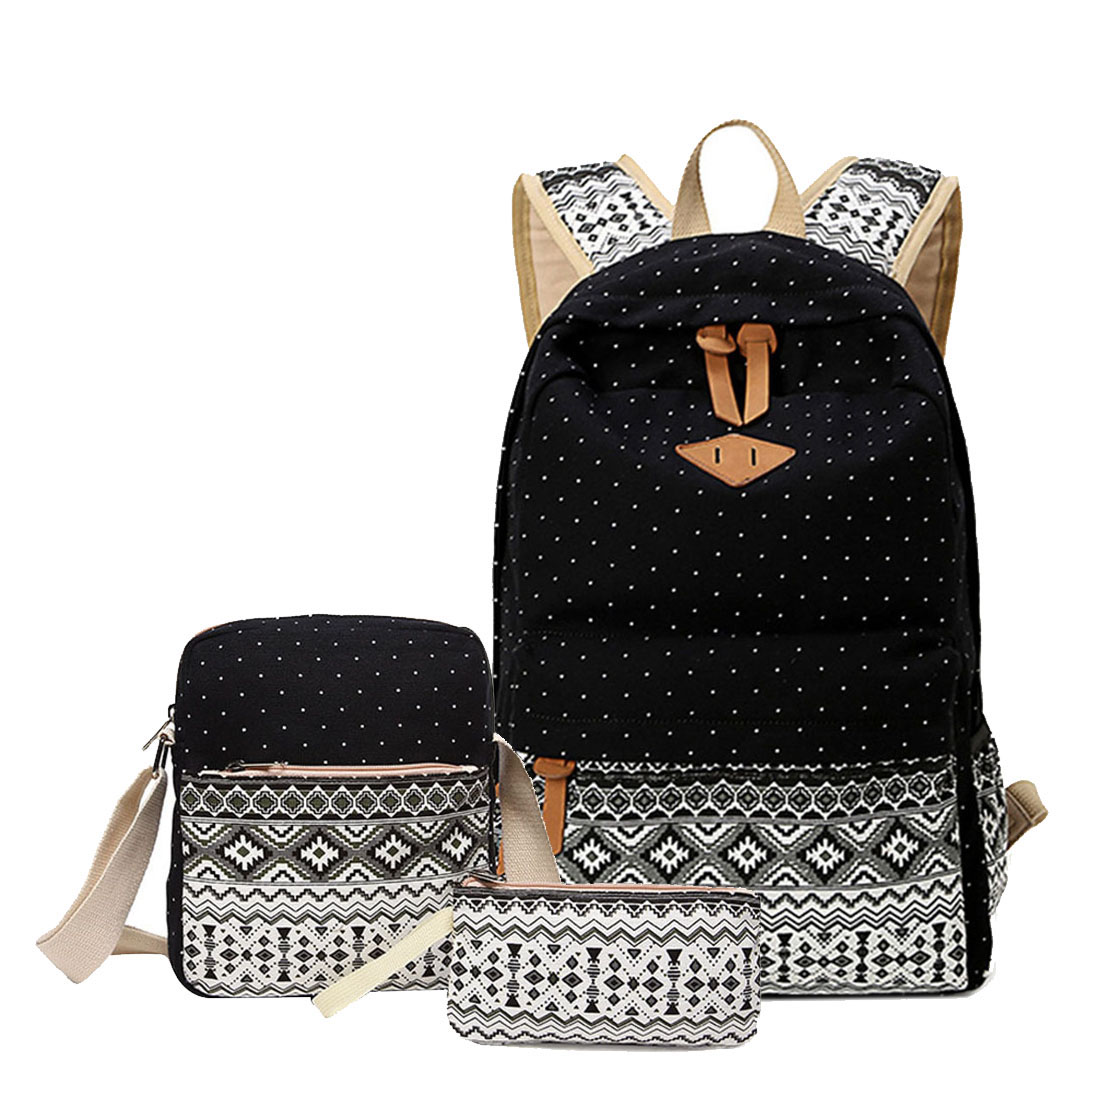 3 pcs/set Canvas Printing Backpack Women School Backpacks Bag for Teenage Girls Vintage Laptop Rucksack Bagpack Female Schoolbag miwind women canvas backpack fashion 4 pieces set printing school backpacks for teenage girls travel shoulder bag rucksack cb249